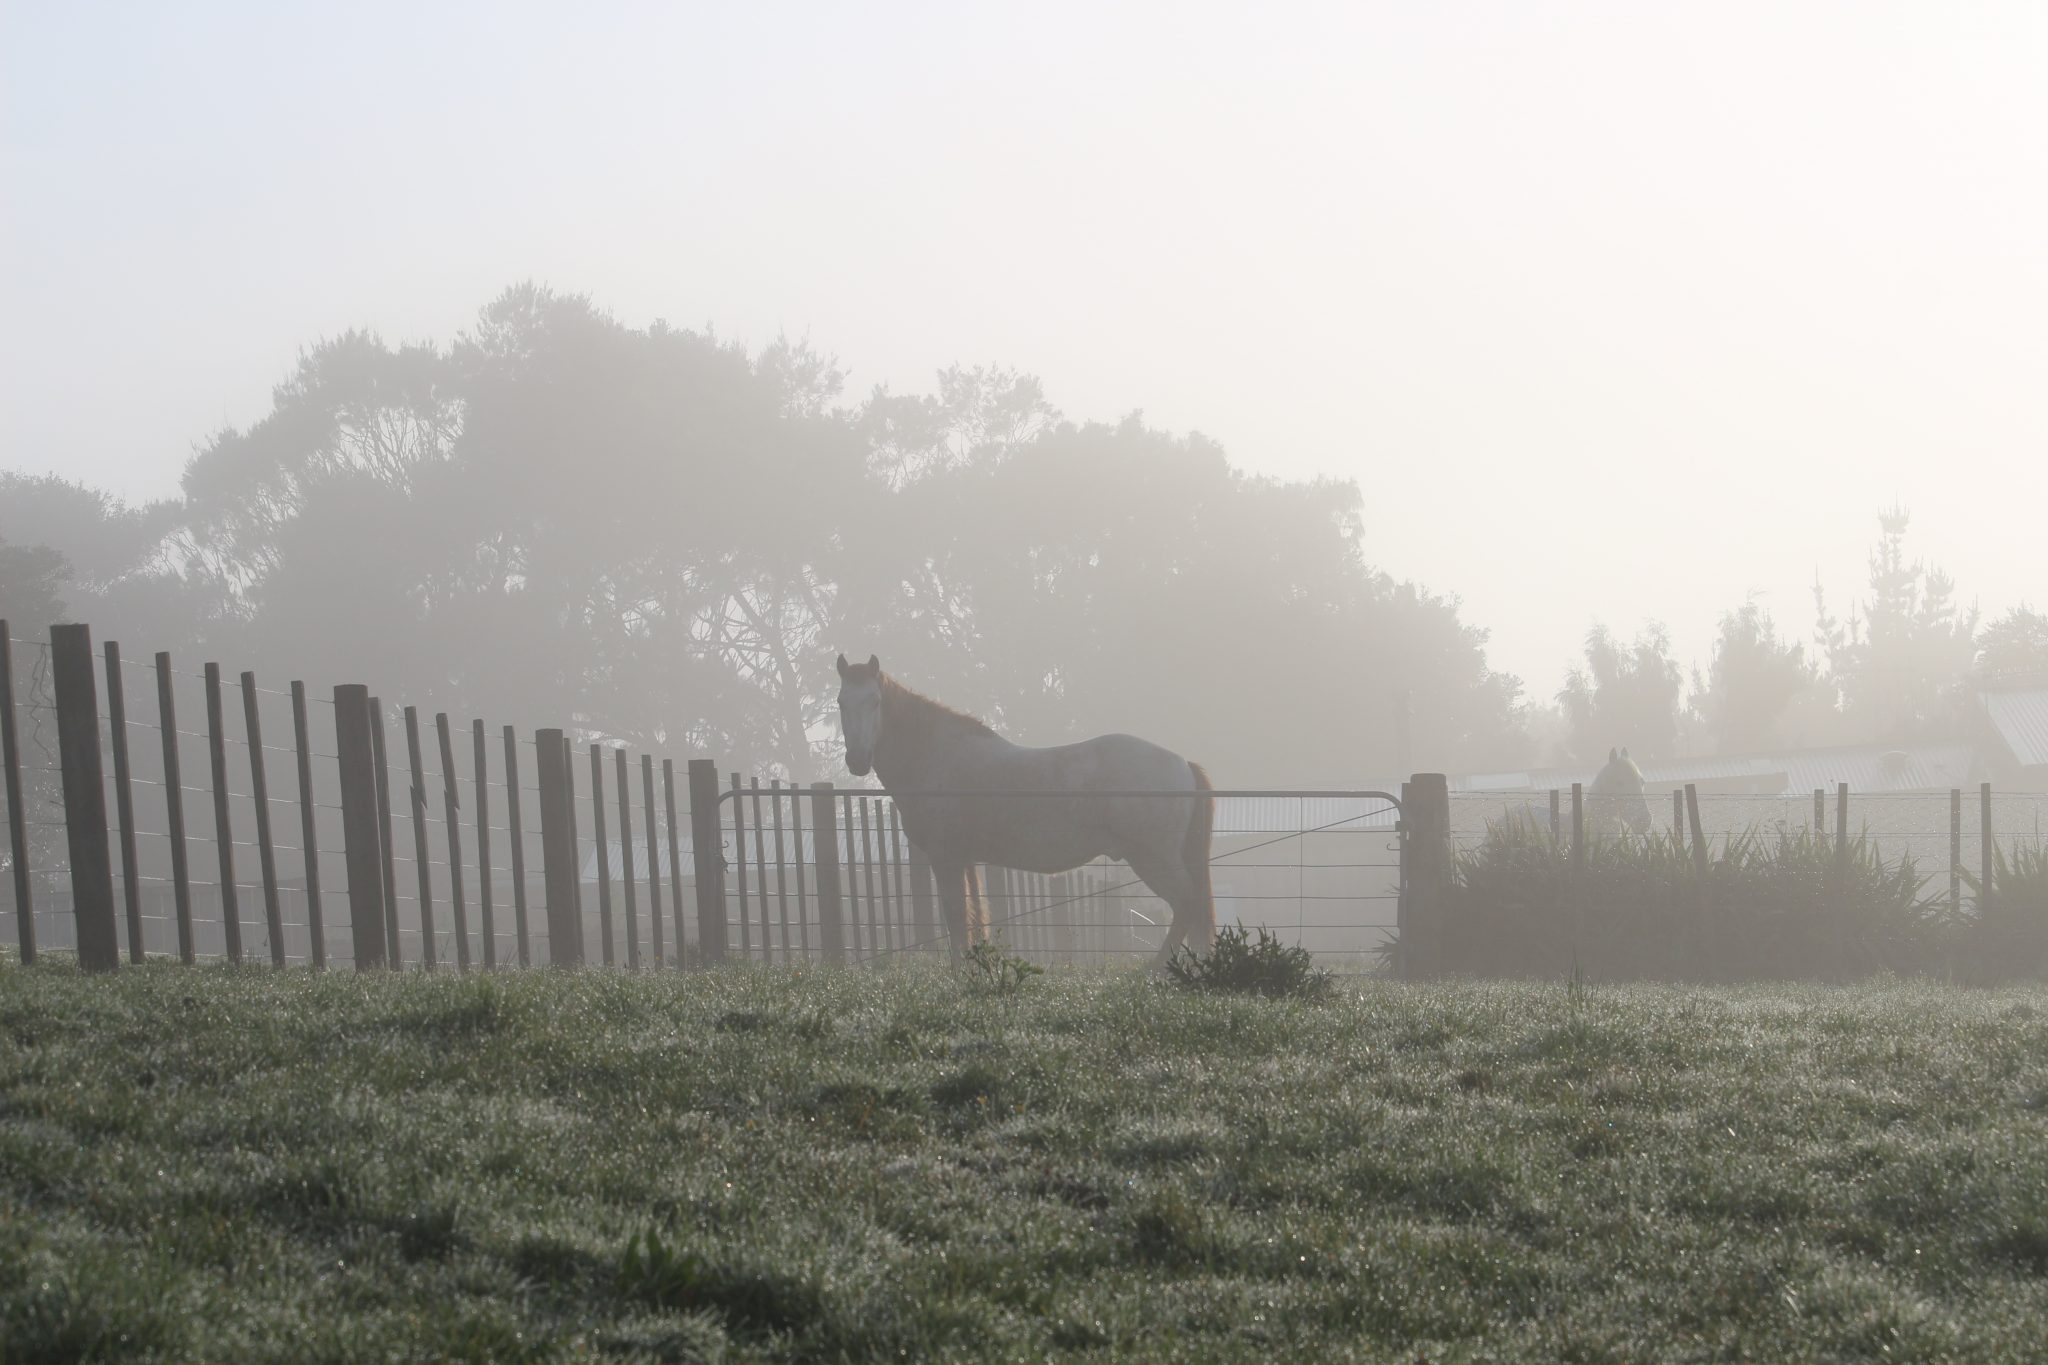 Horse at gate in the fog